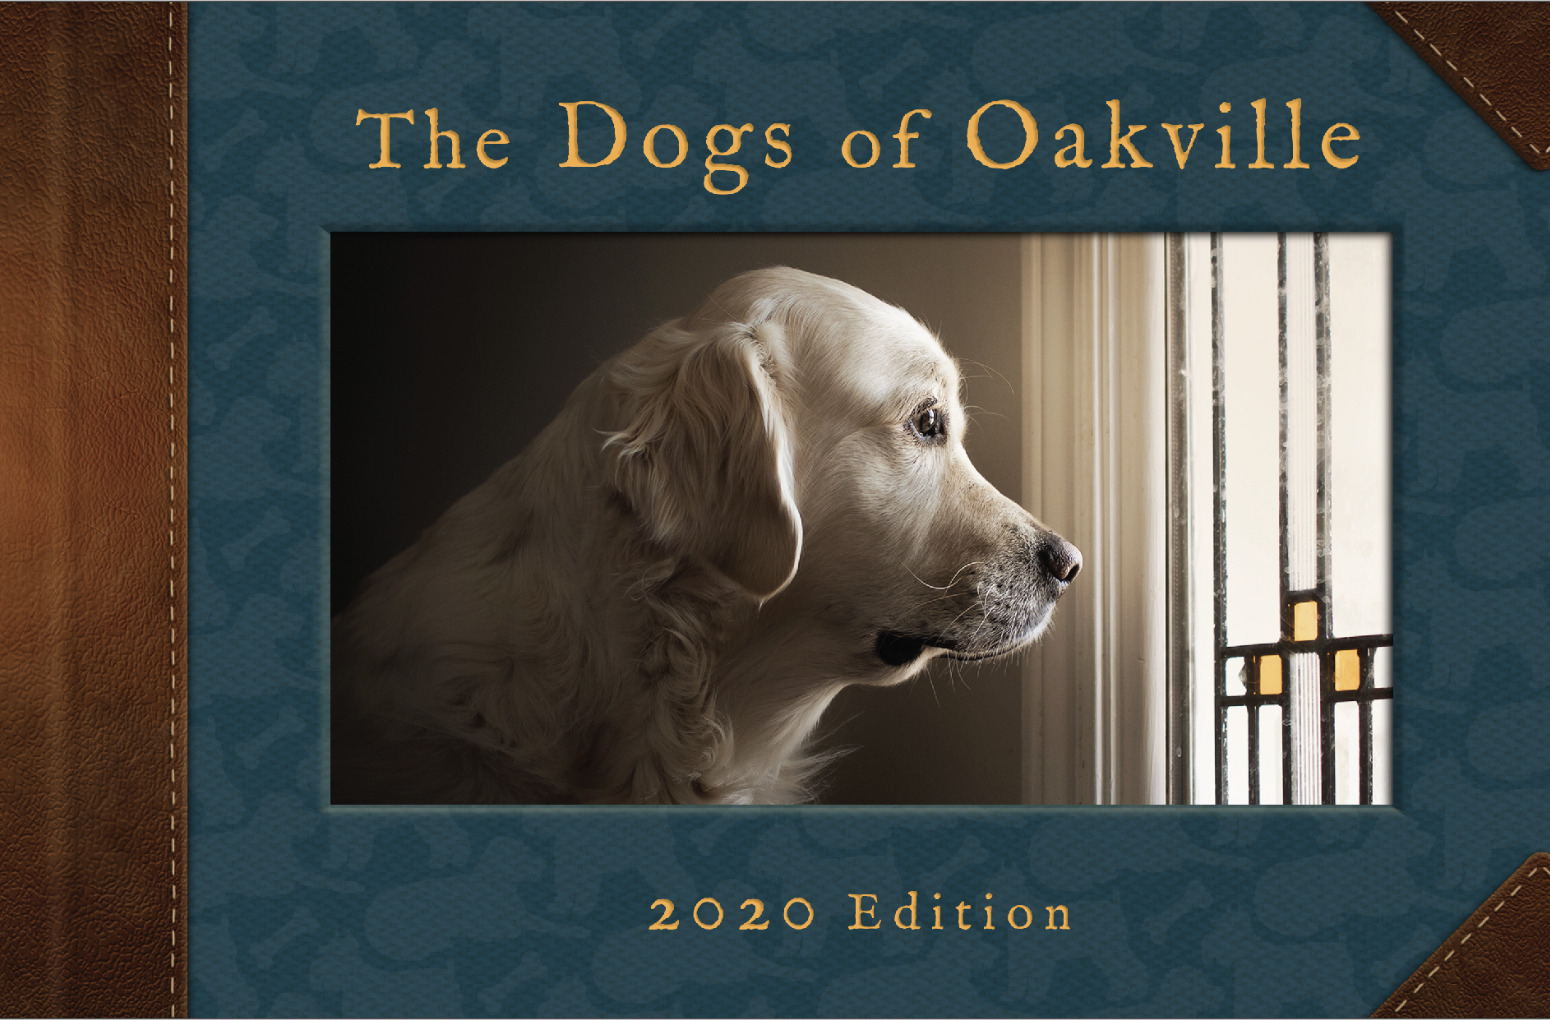 DOO book cover - Dogs of Oakville